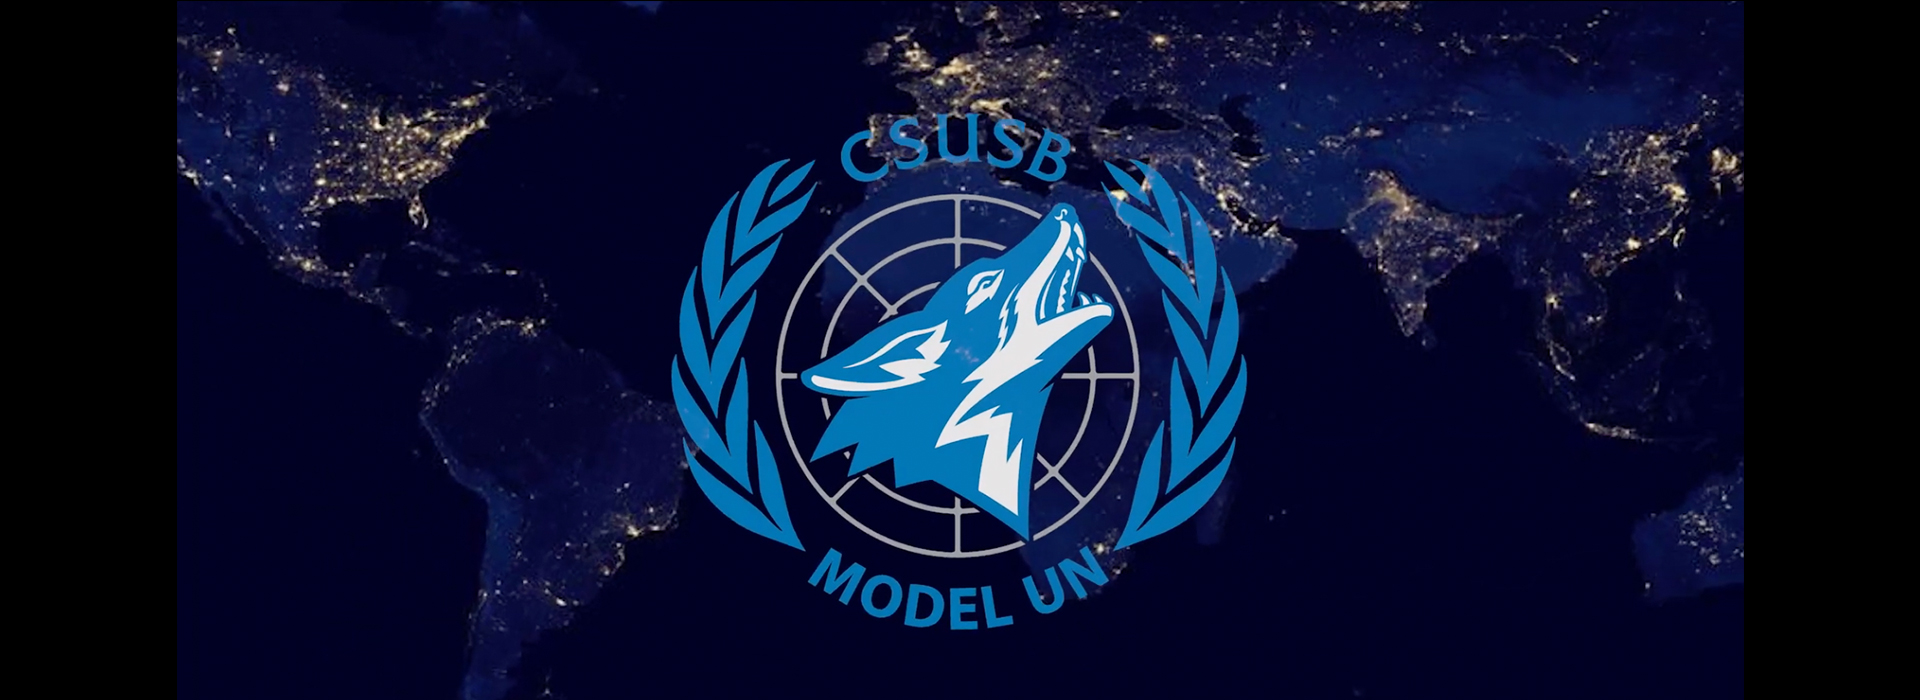 CSUSB Model UN program: A tradition of excellence